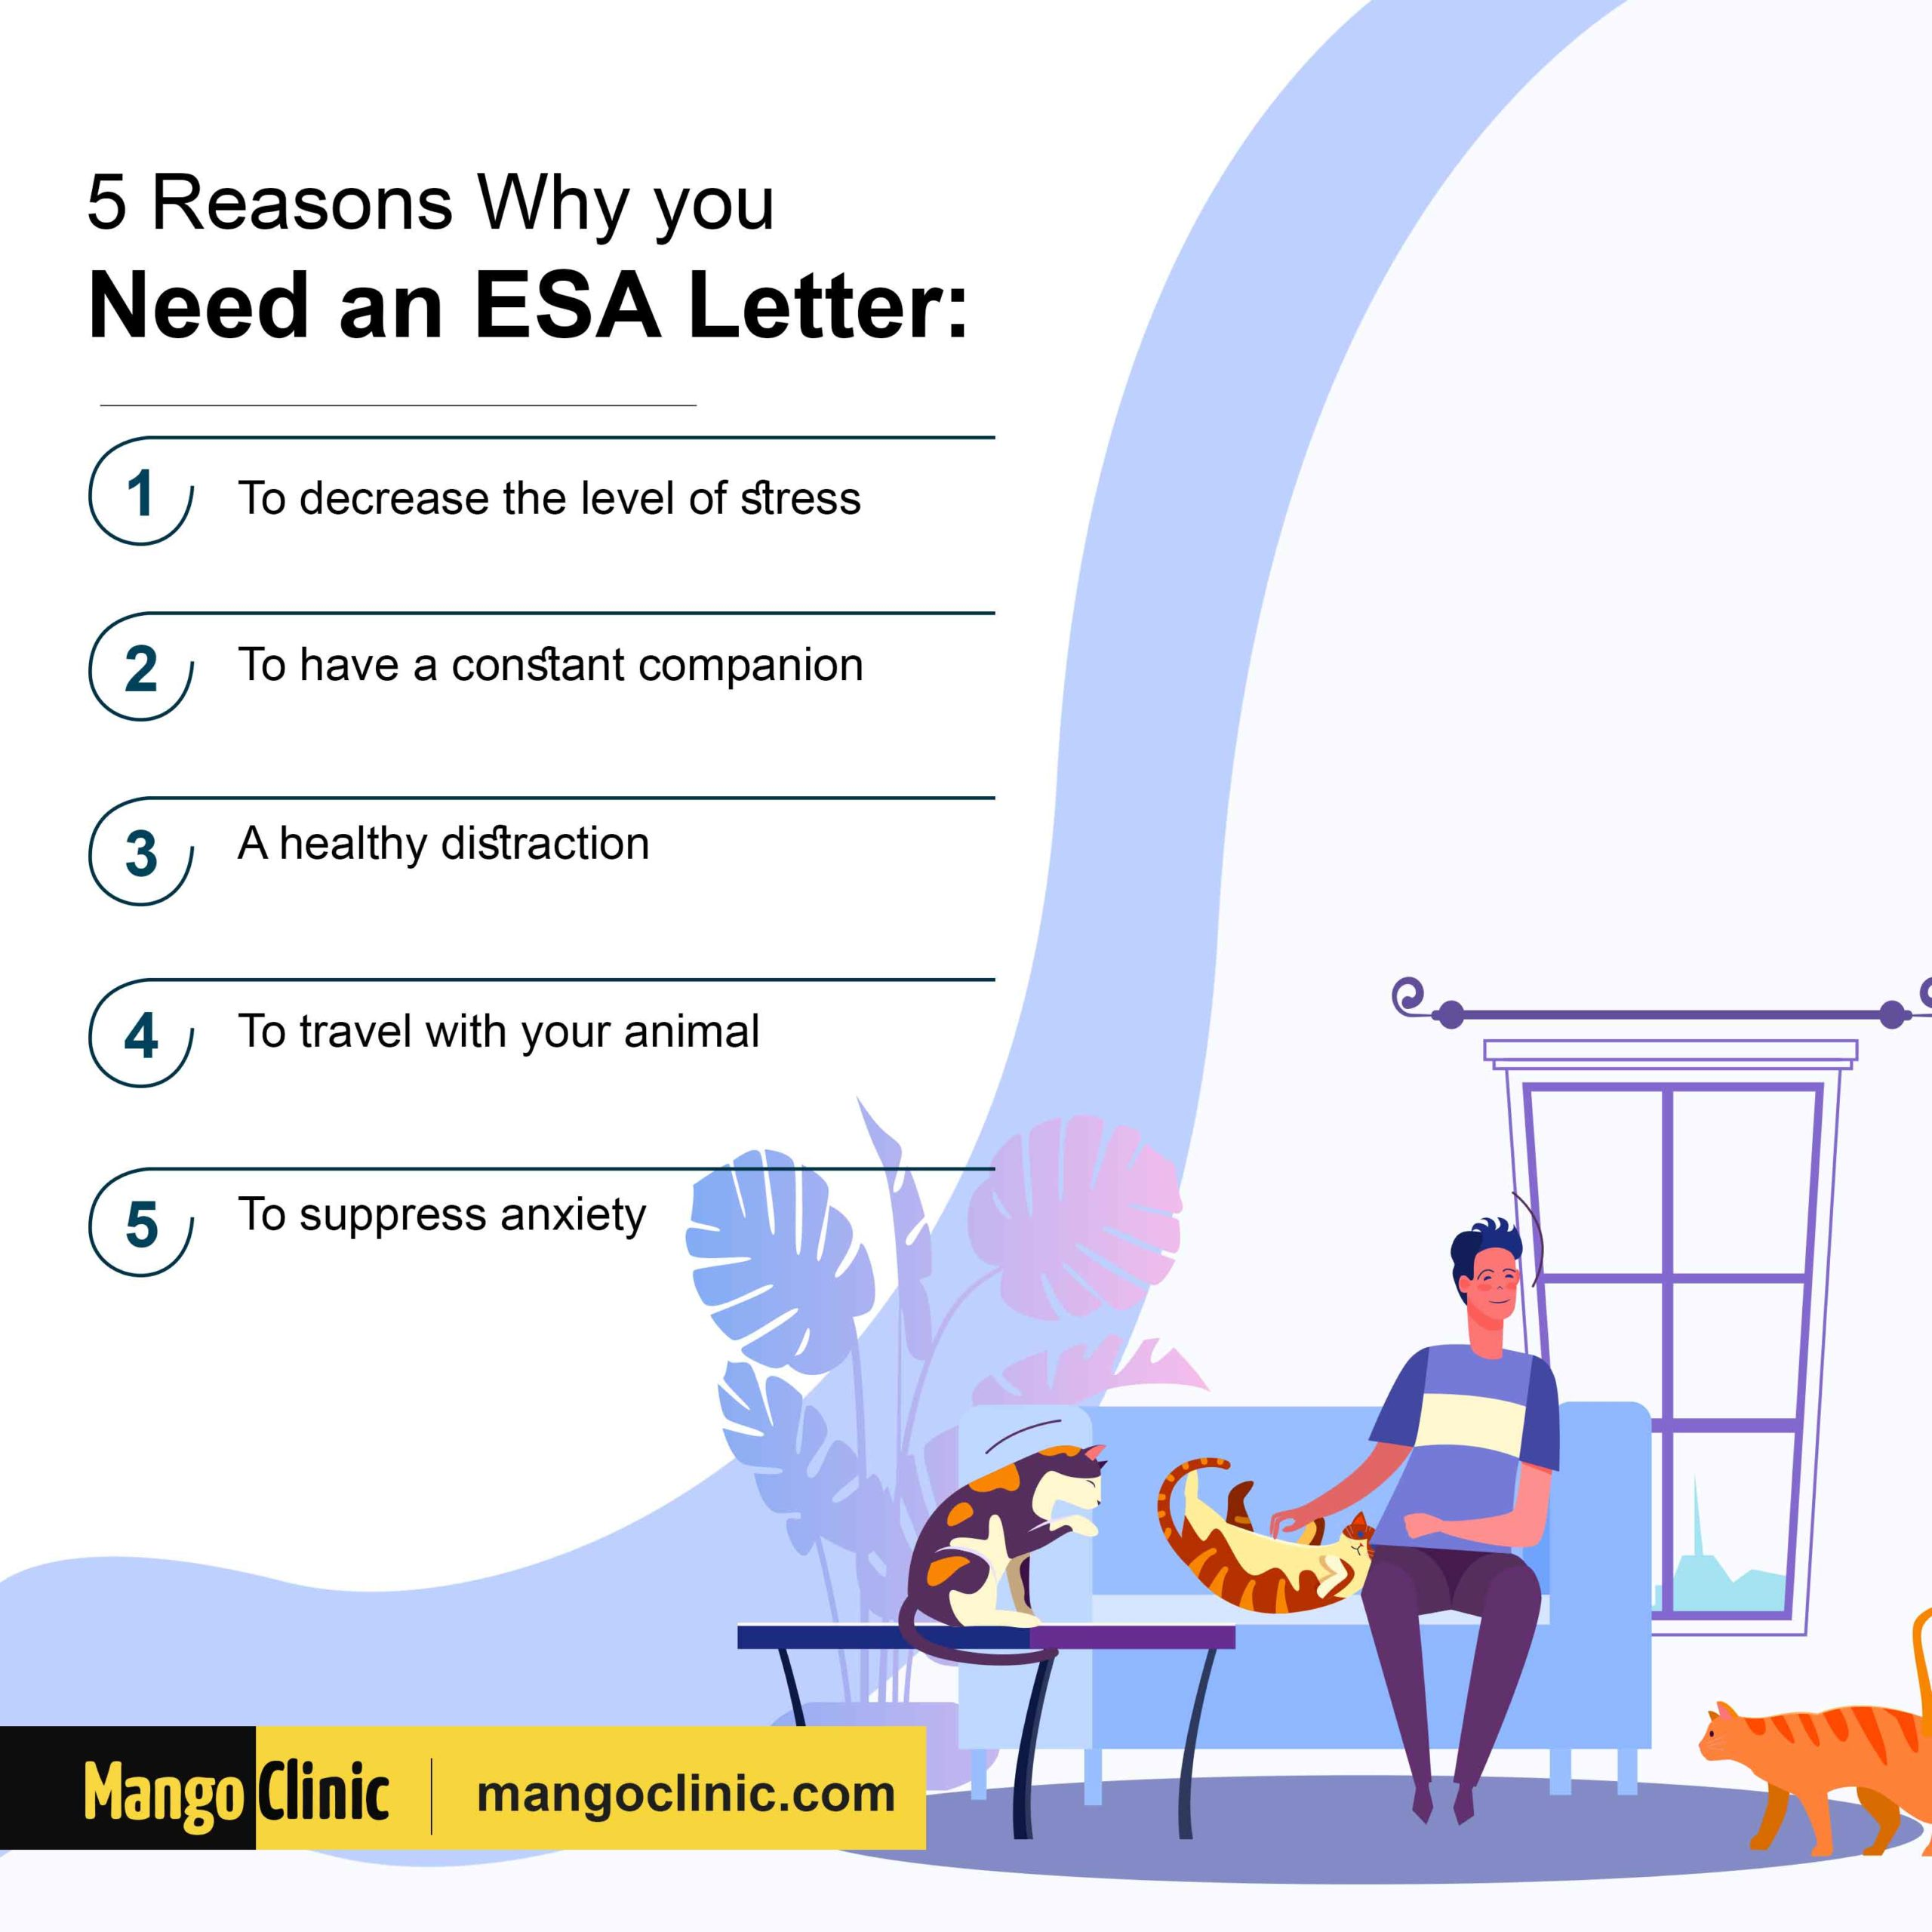 Reasons to get an ESA letter